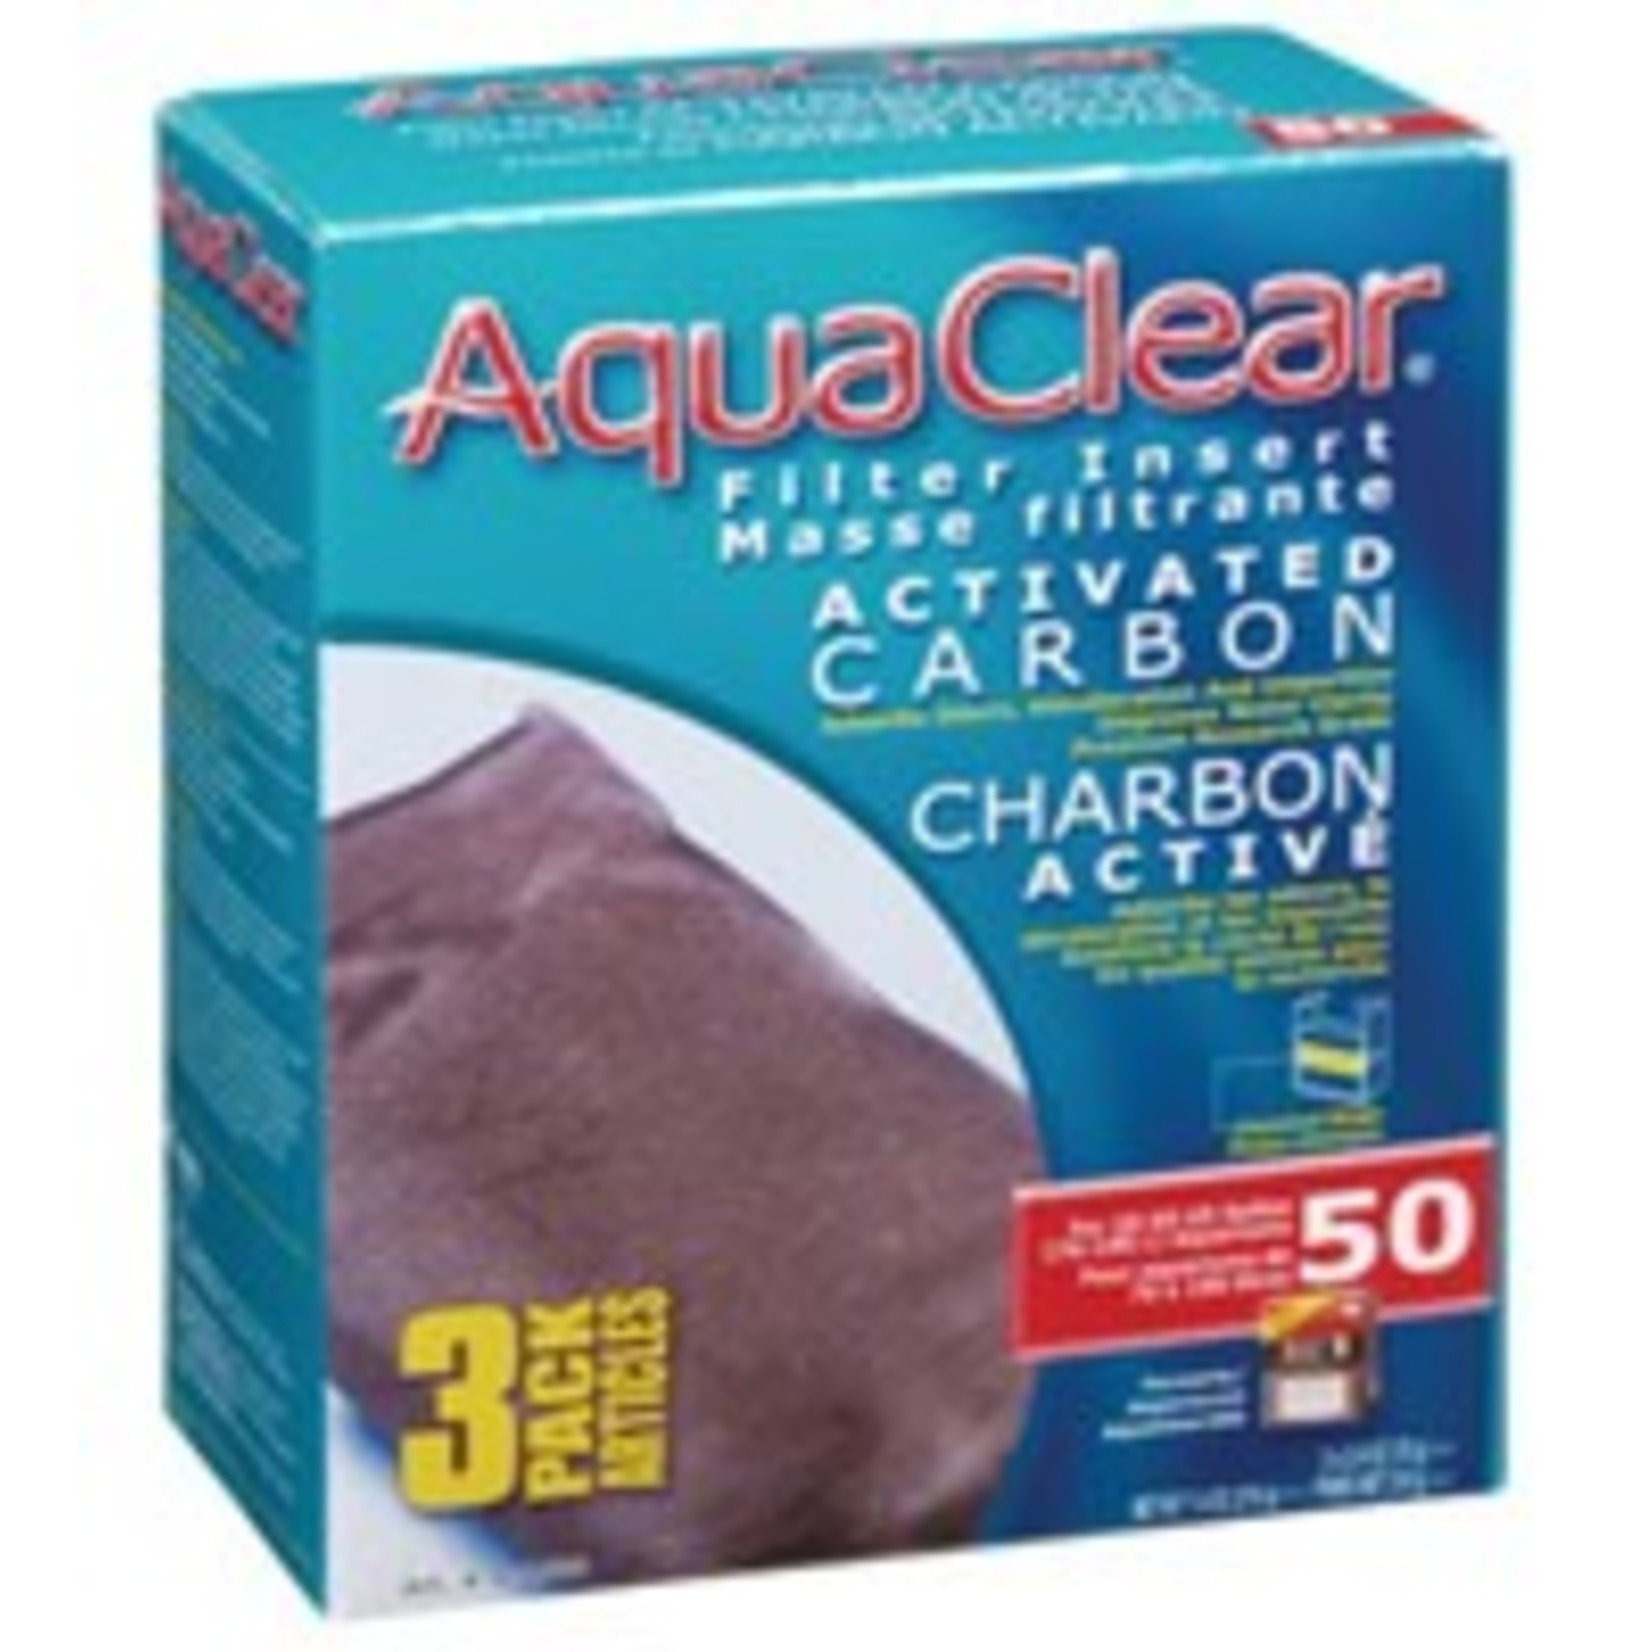 AquaClear 50 Activated Carbon Filter Insert 3 pack, 210 g (7.4 oz)